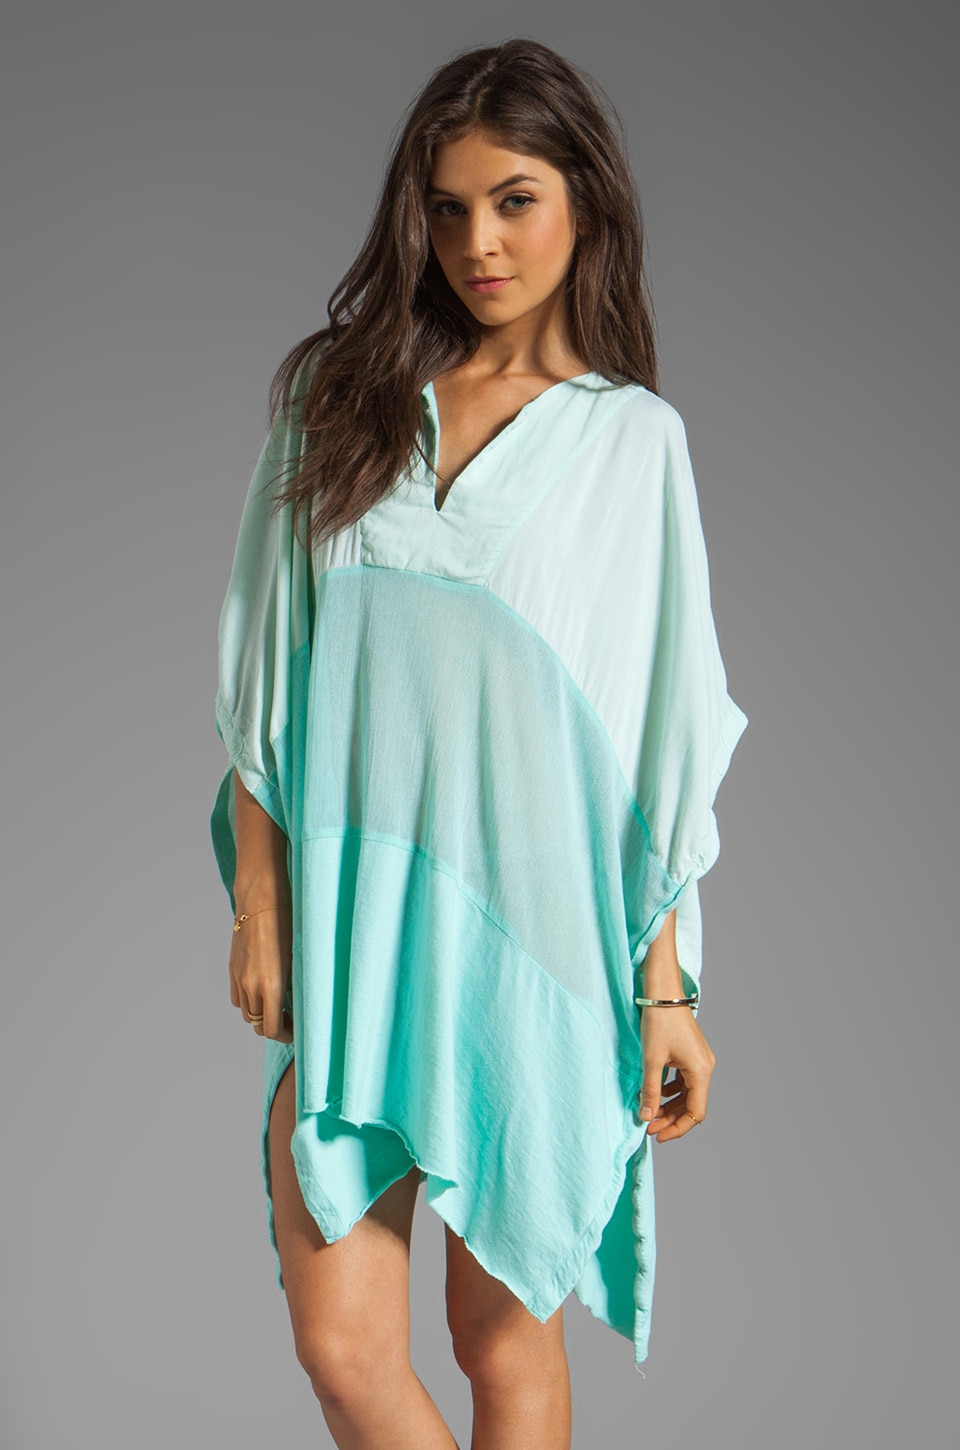 Rebel Yell June Kaftan in Vintage Mint